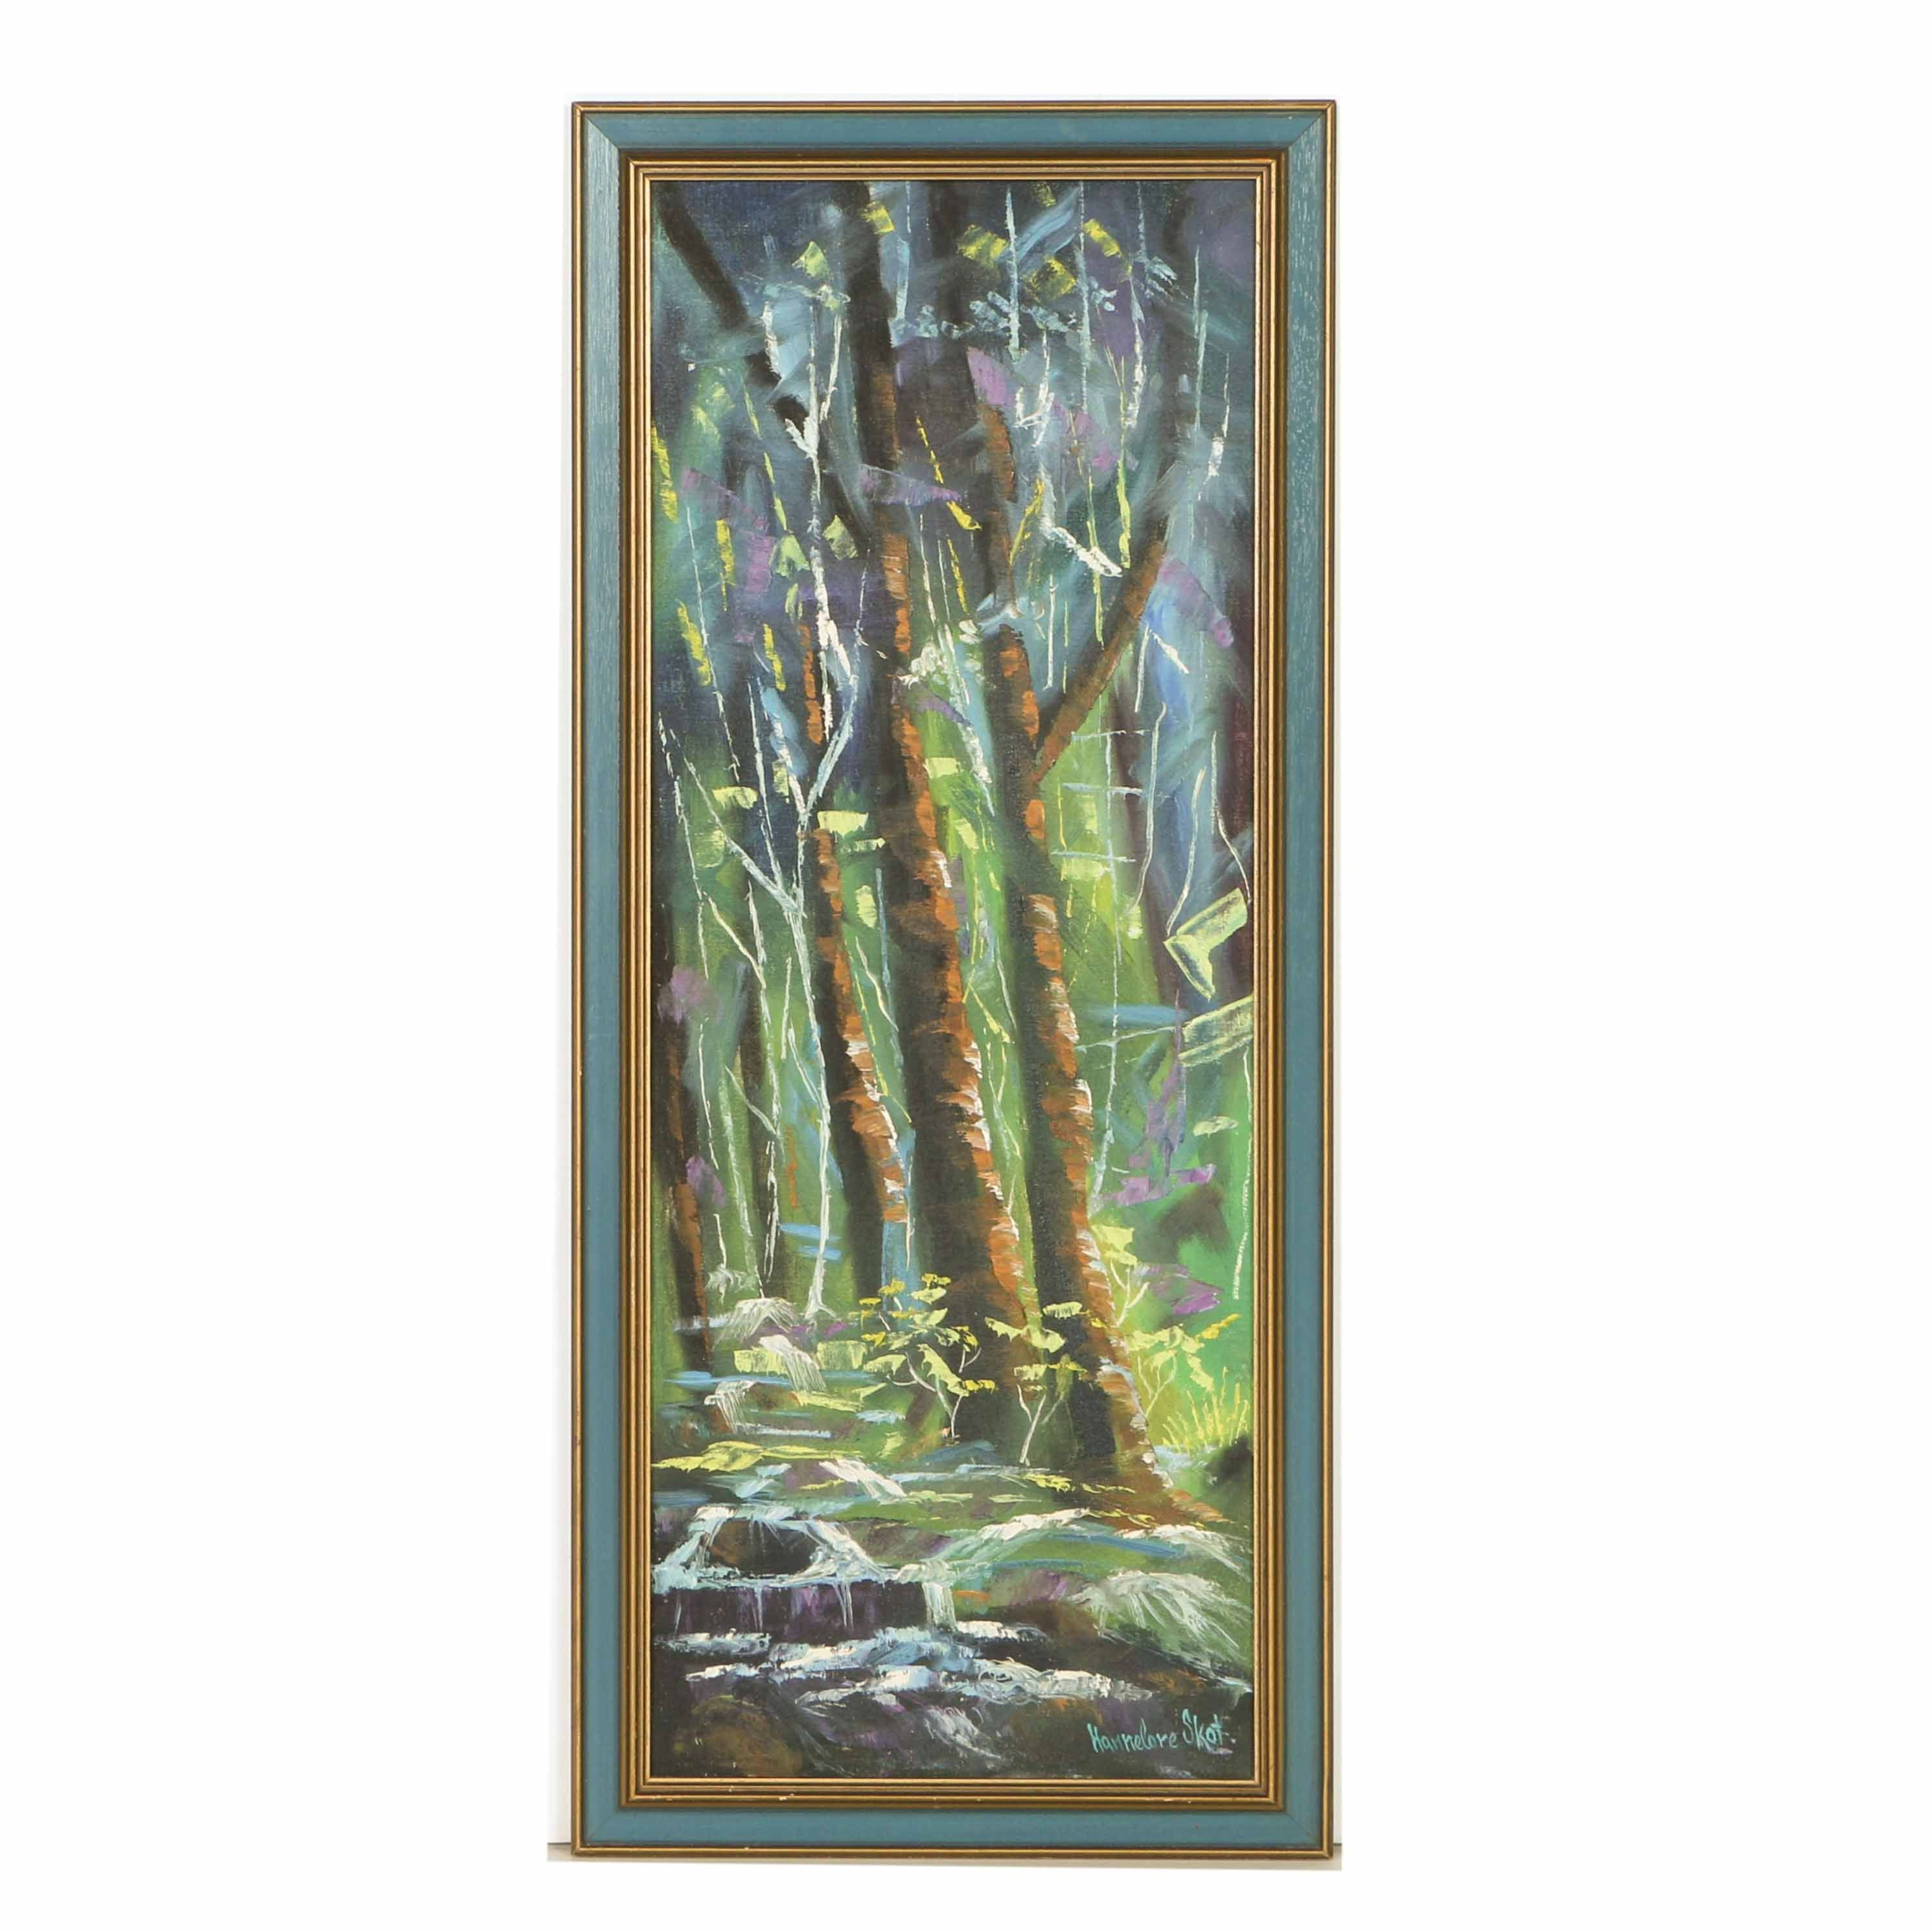 Hannelore Skot Oil Painting on Canvas Board of a Tree Lined Stream